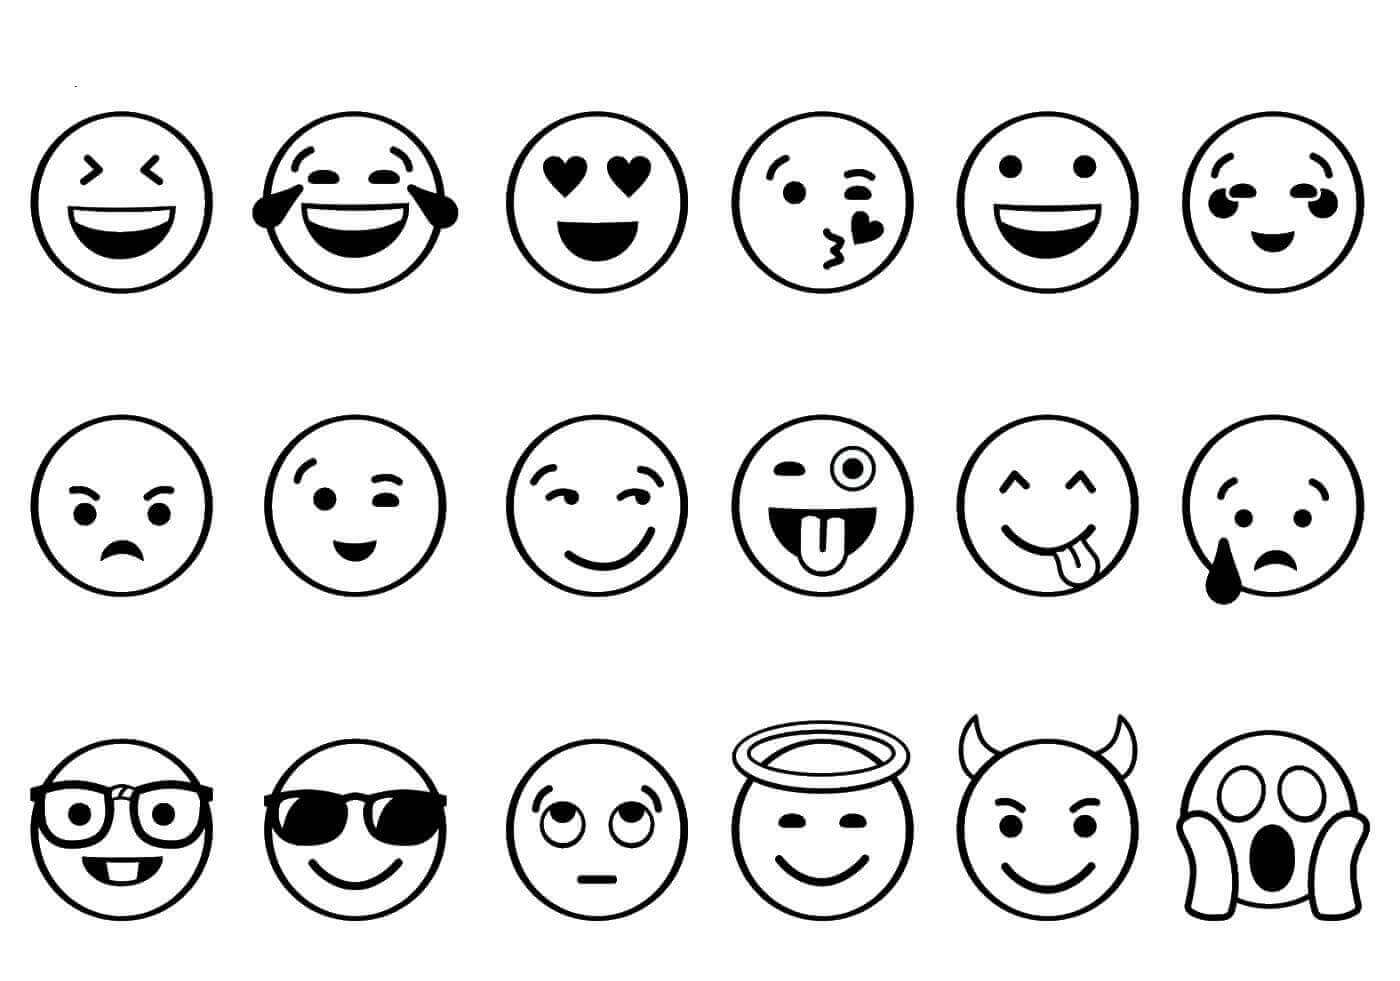 coloring emoji pictures 40 printable emoji coloring pages for kids cool and simple emoji pictures coloring